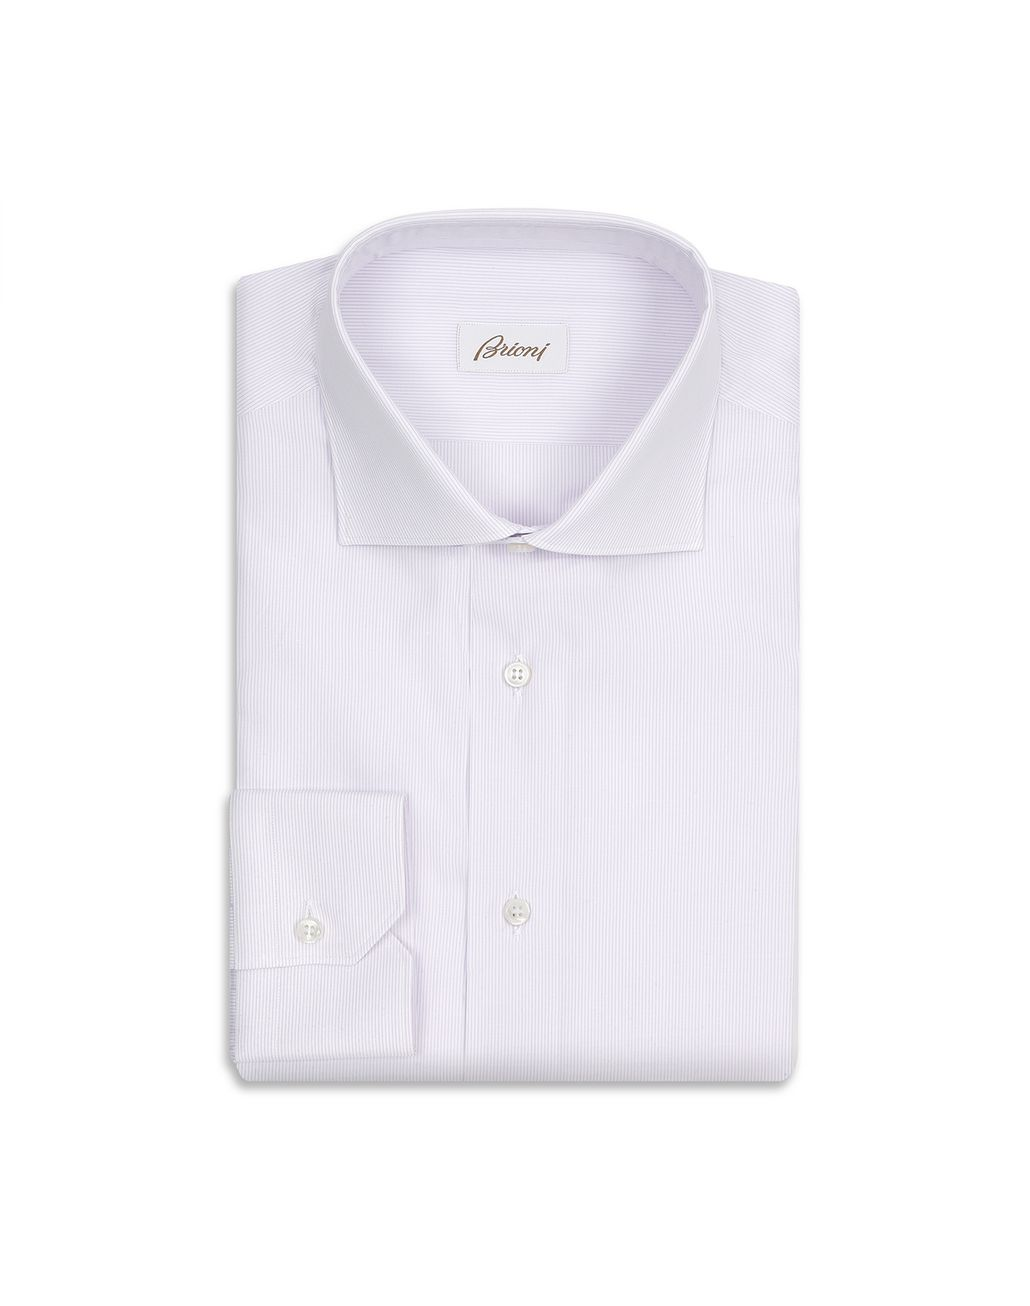 BRIONI Lilac and White Striped Formal Shirt Formal shirt Man f